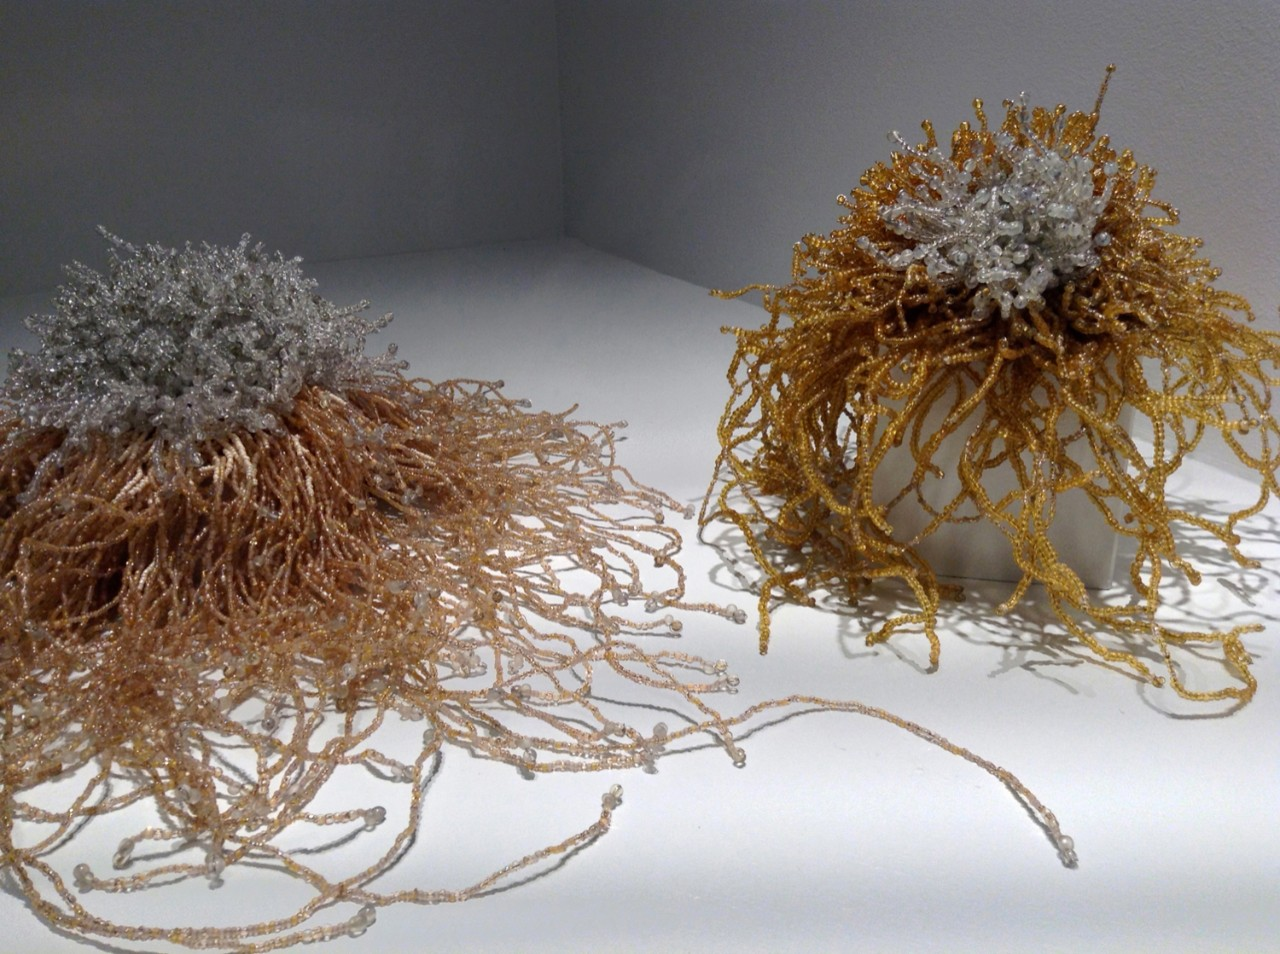 """4. Tolerances I & II, Glass, copper wire and plastic, 3.5"""" x 17"""" x 15"""" and 4.5"""" x 23"""" x 28""""     installation dimensions vary (2012)"""